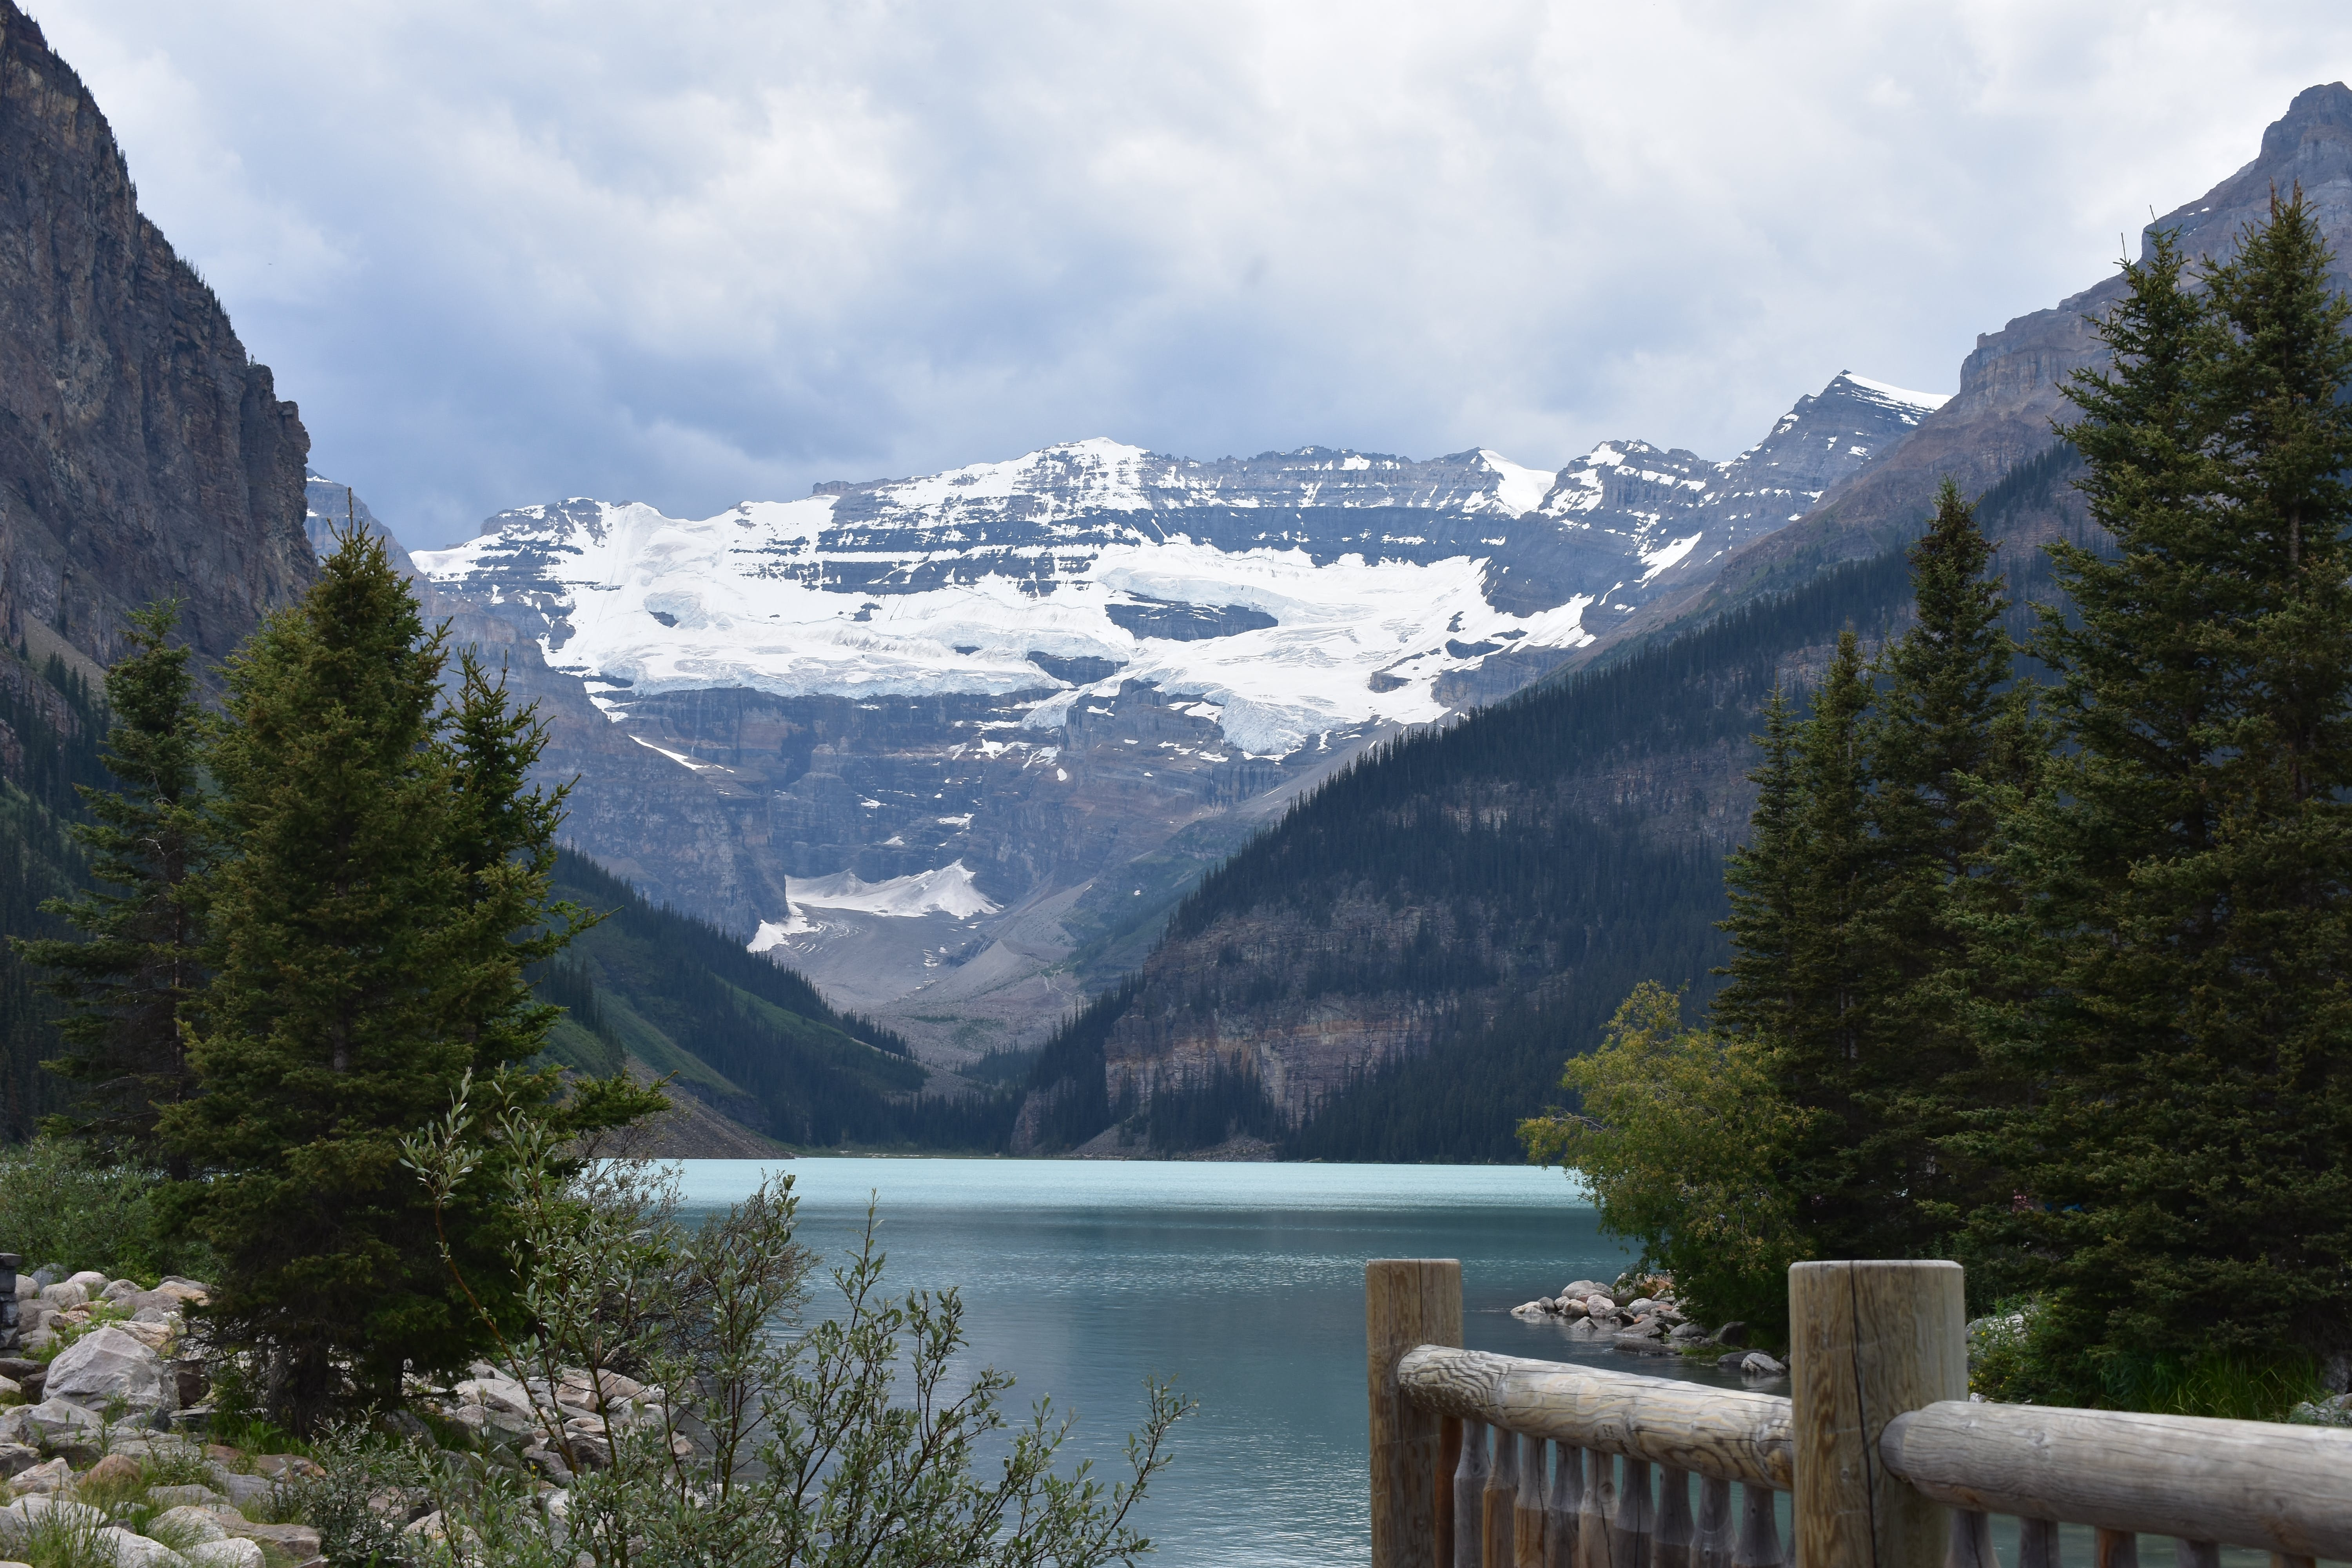 Free stock photo of Canadian rockies, mountains, rocky mountains, trees